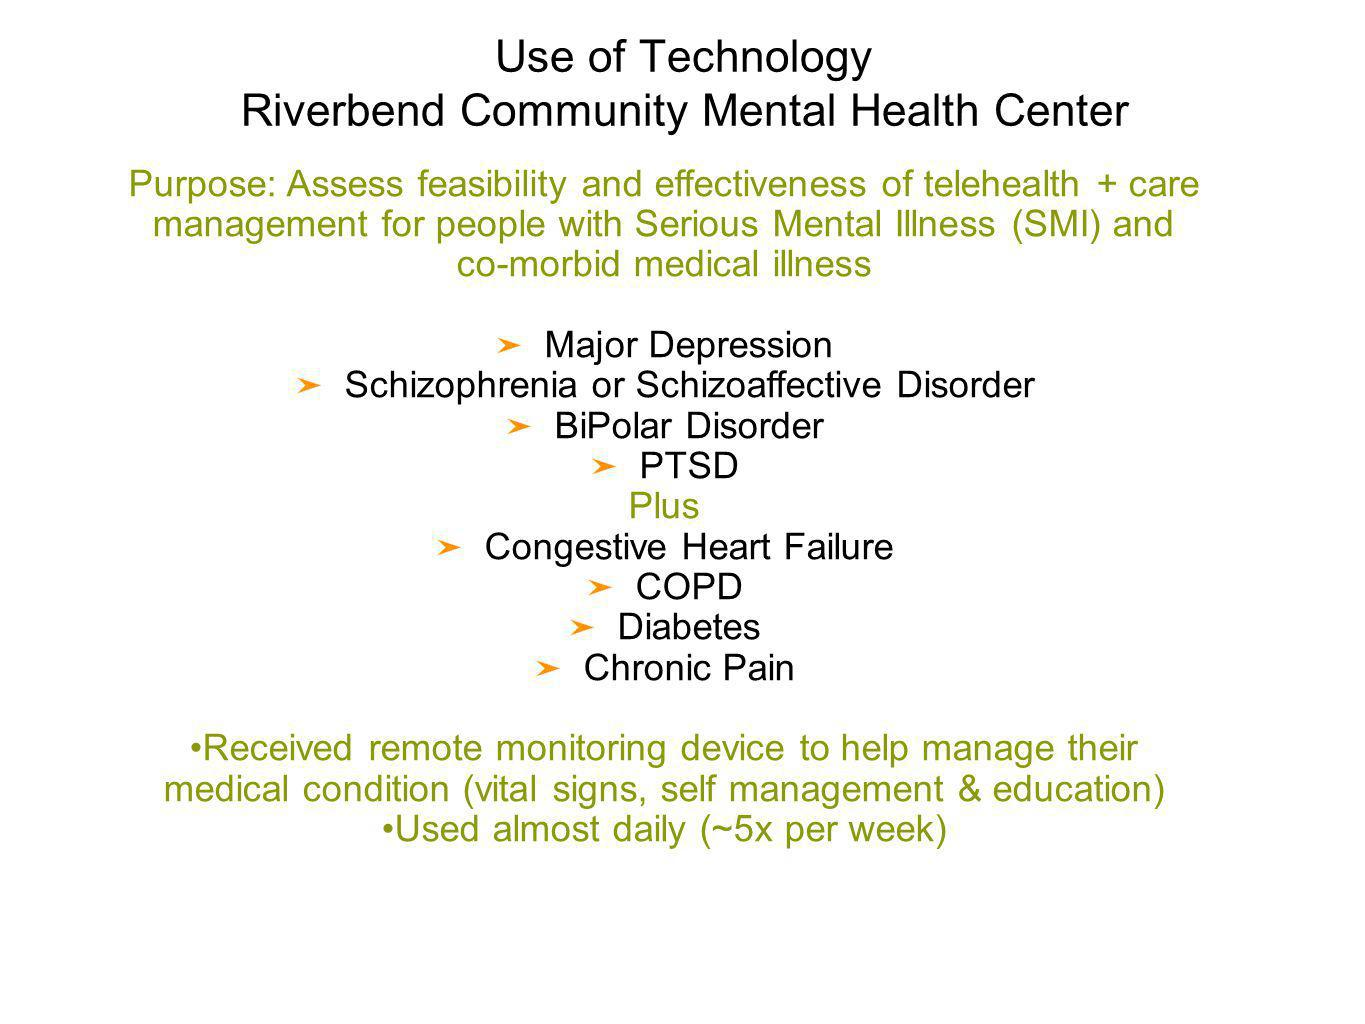 Use of Technology Riverbend Community Mental Health Center Purpose: Assess feasibility and effectiveness of telehealth + care management for people wi